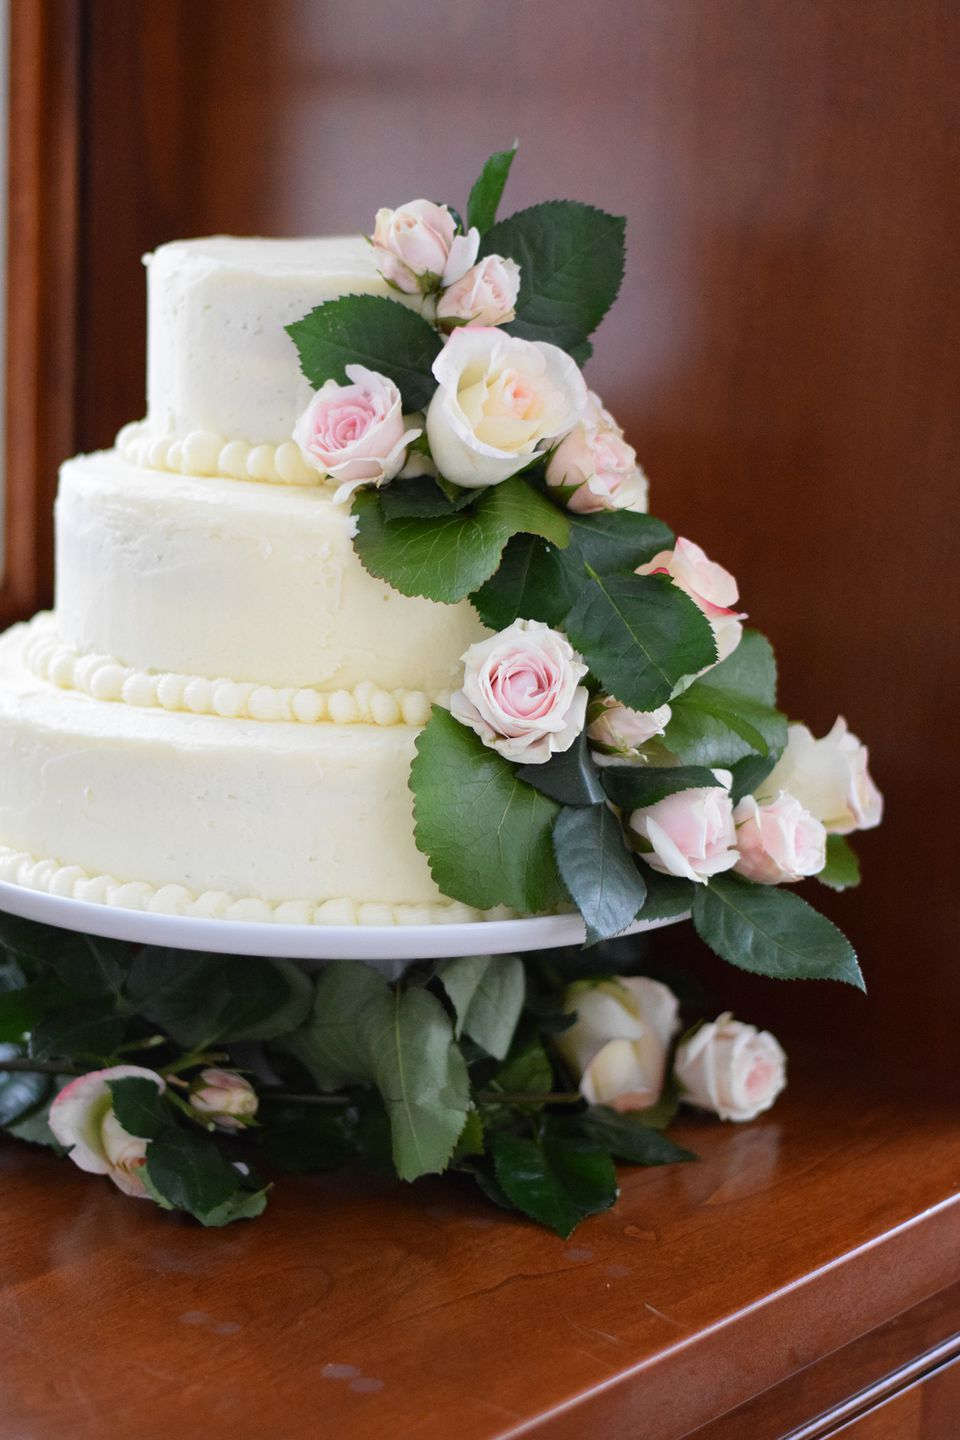 bake a wedding cake at home how to bake and decorate a 3 tier wedding cake 11014